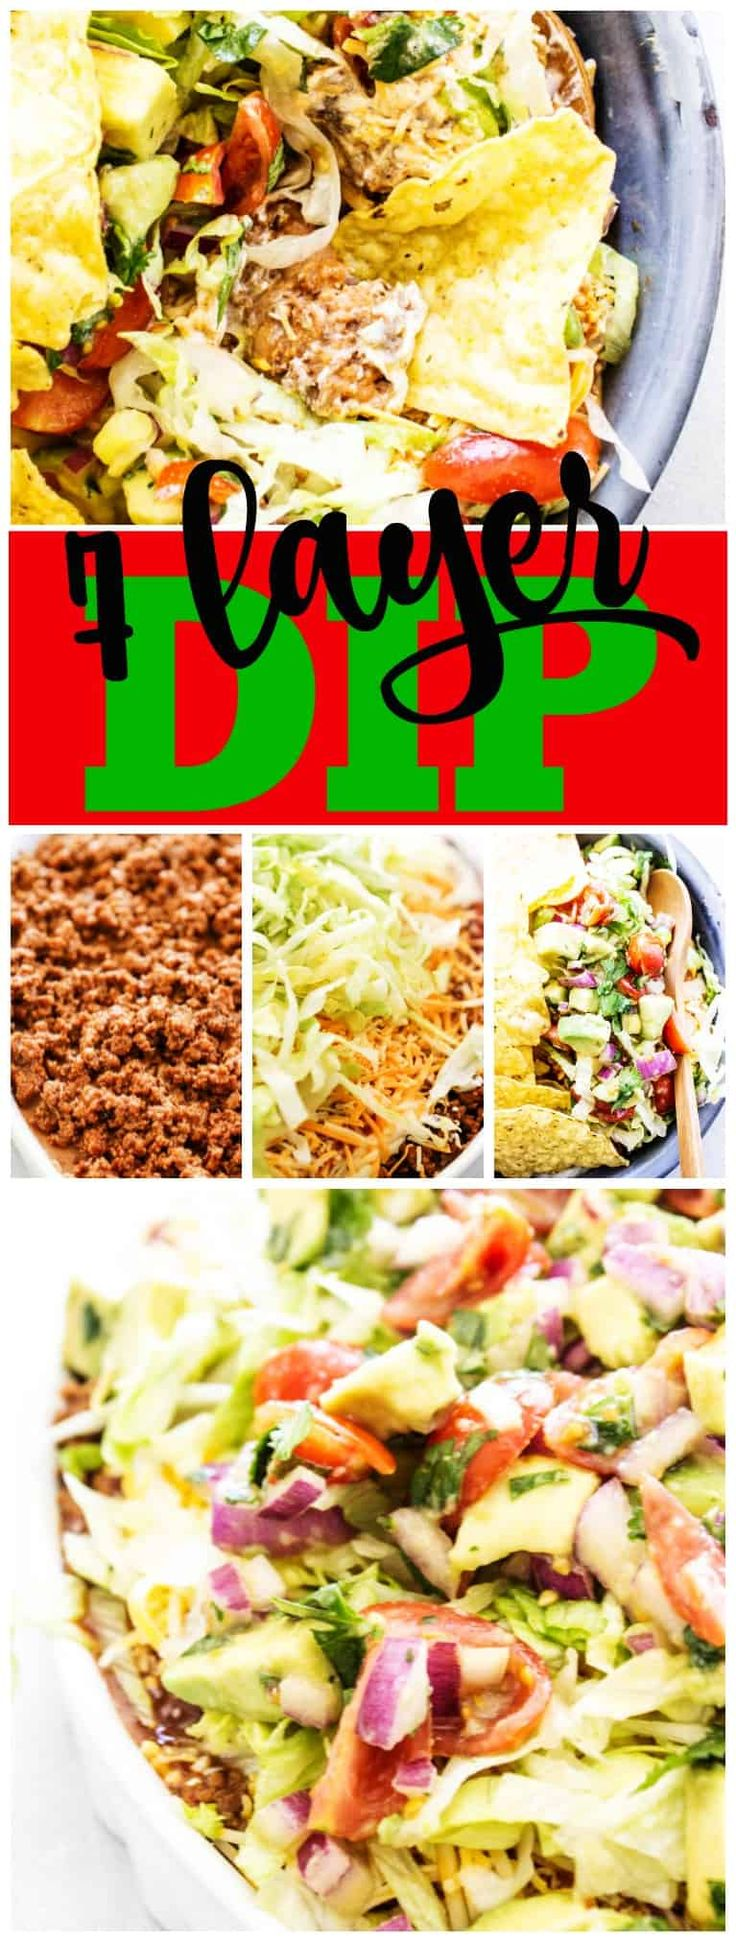 Mouthwatering 7 LAYER DIP is always a huge hit at barbecues, get-togethers and gameday gatherings, layering your favorite dip ingredients onto one plate. #ad #gametimefood #dip #grub